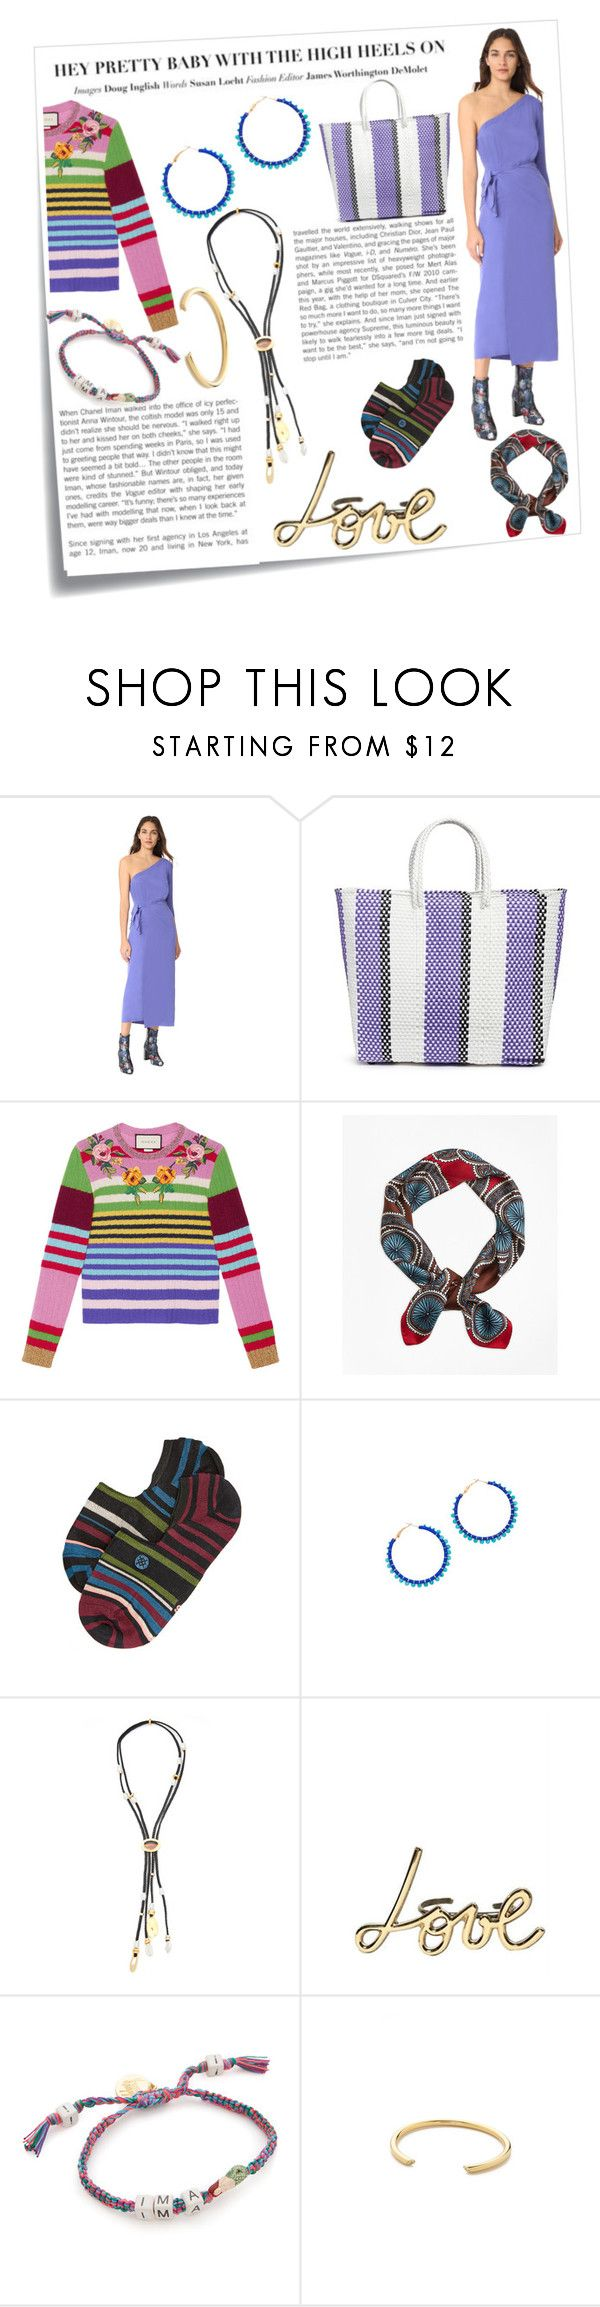 """""""The beat fashion is on the streets"""" by emmamegan-5678 ❤ liked on Polyvore featuring Post-It, Mara Hoffman, TRUSS, Gucci, Brooks Brothers, Stance, Rebecca Minkoff, Lizzie Fortunato, Lanvin and Venessa Arizaga"""